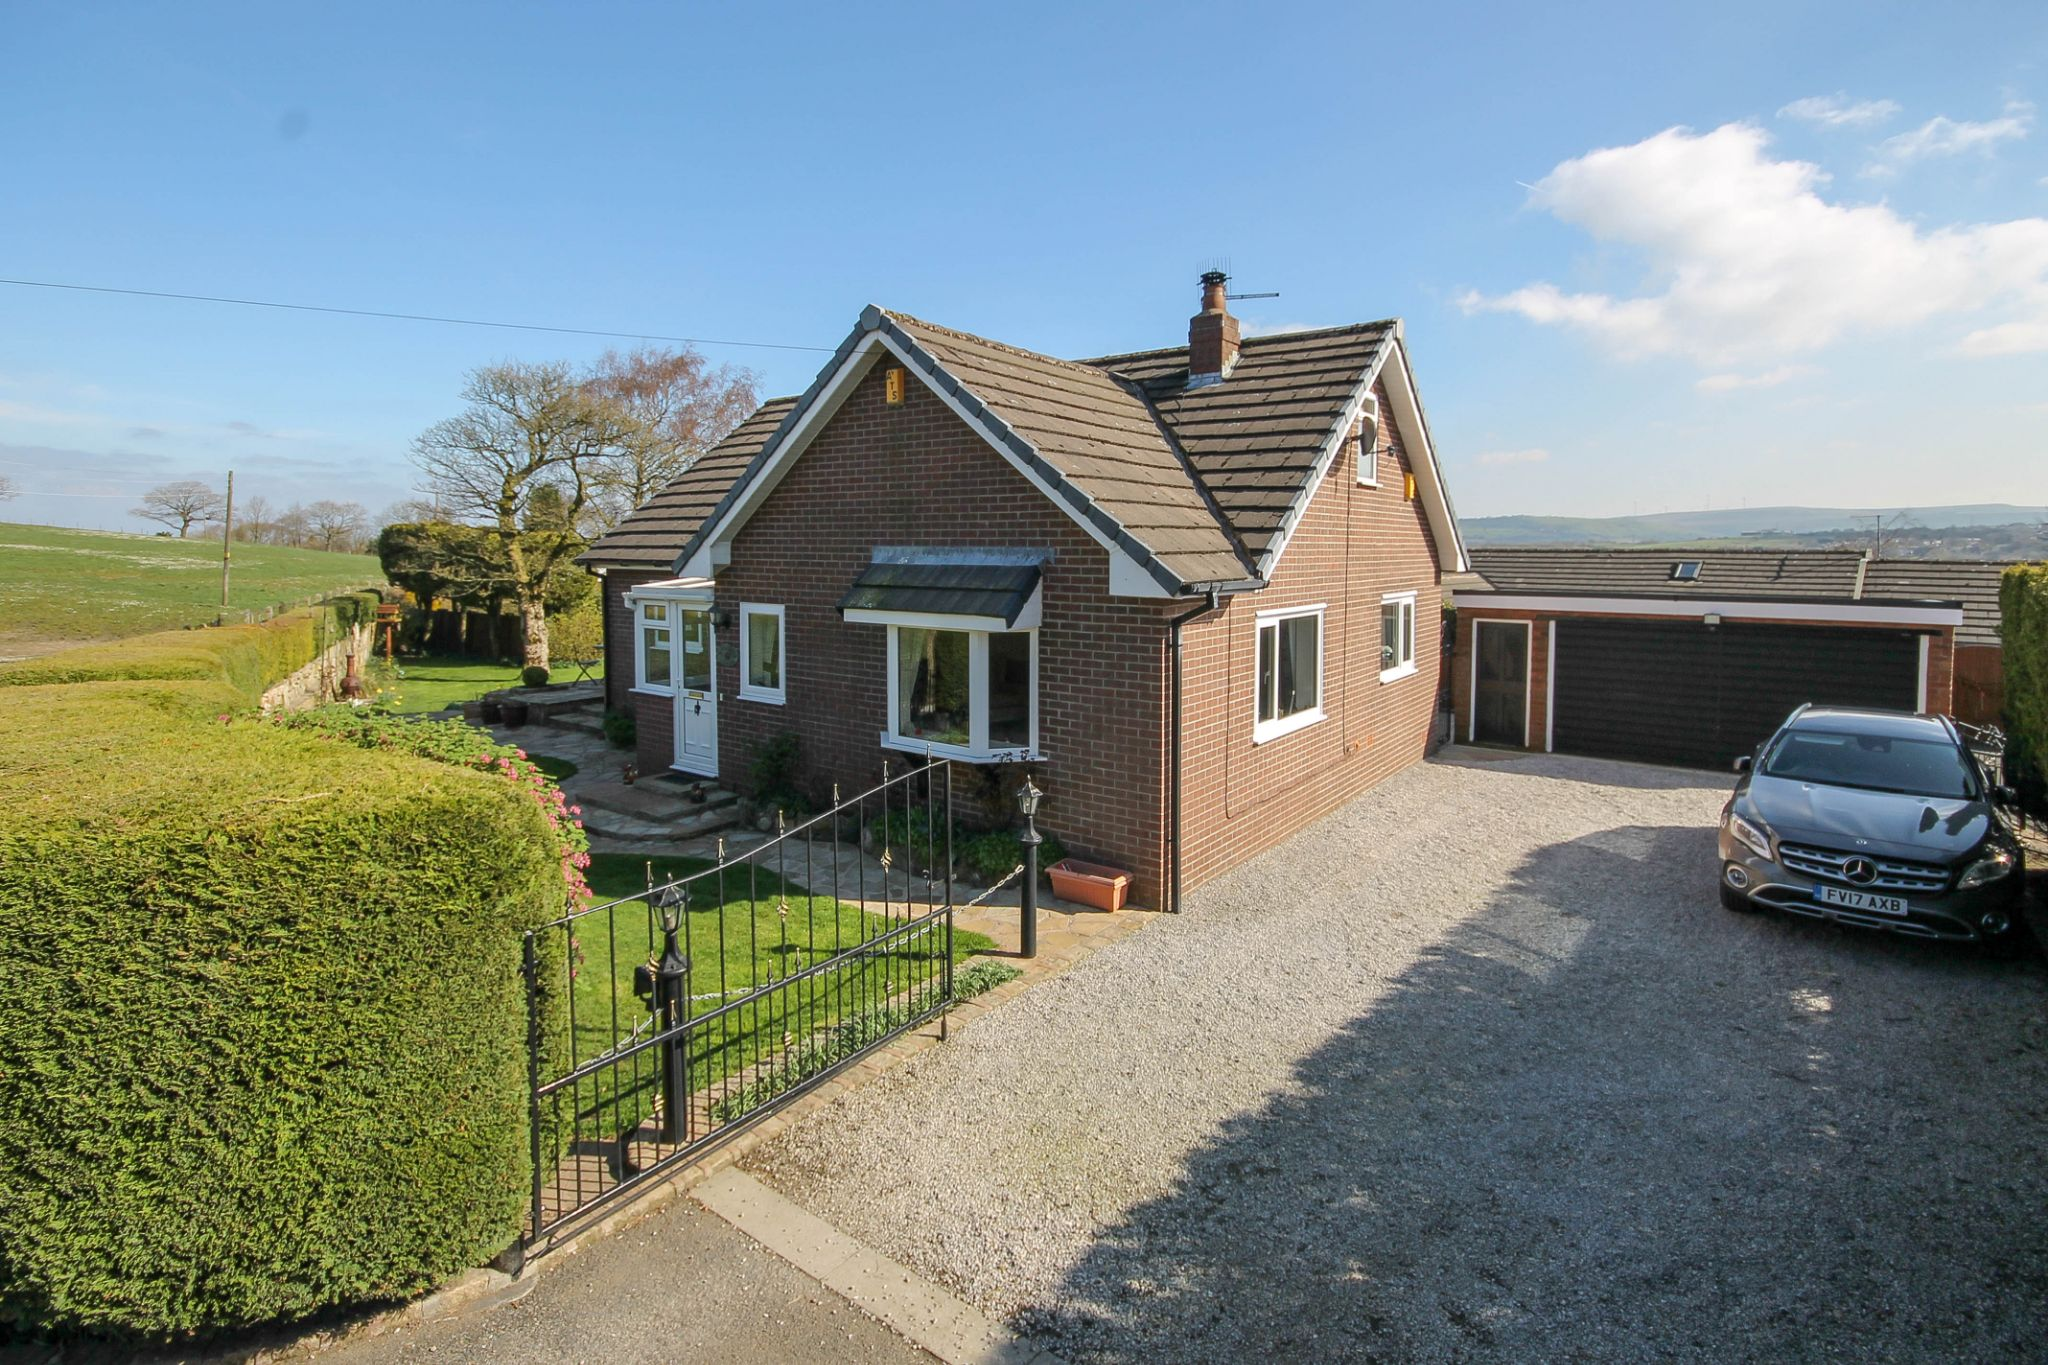 3 bedroom detached house For Sale in Darwen - Property photograph